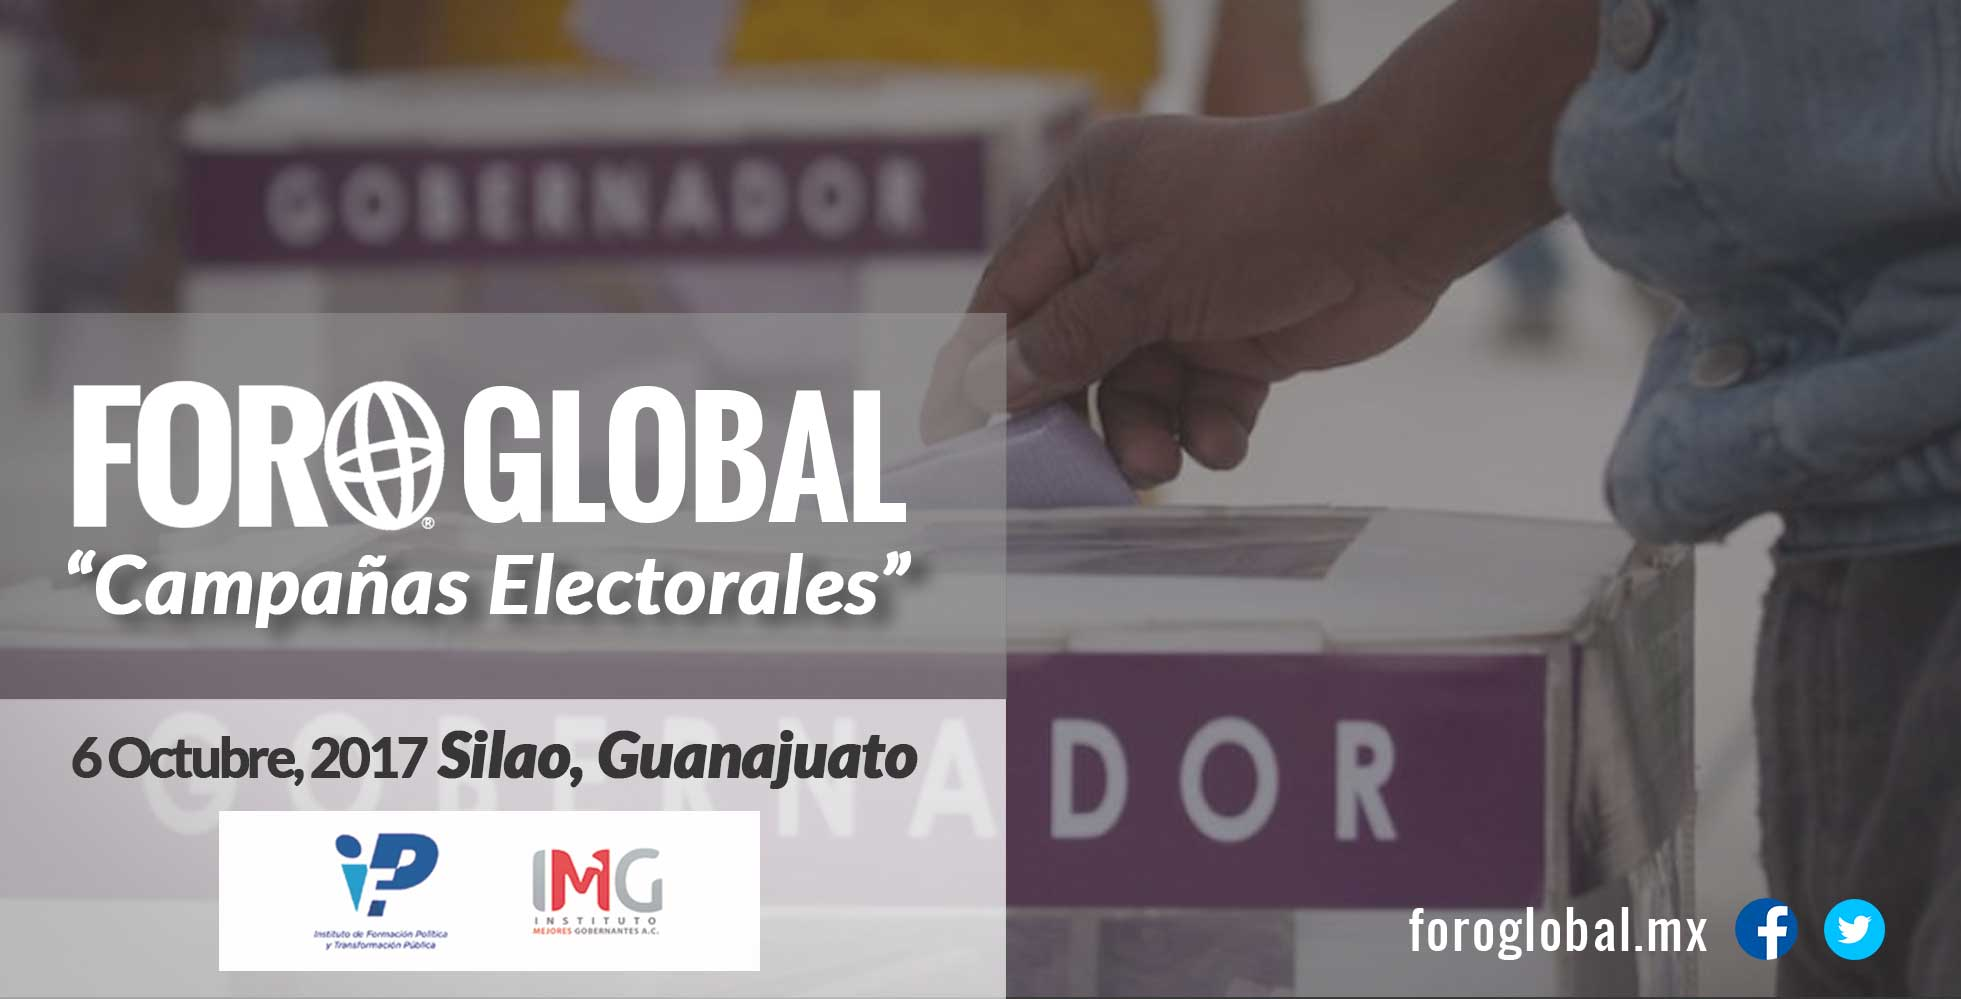 Foro Global Campañas Electorales. foroglobal.mx